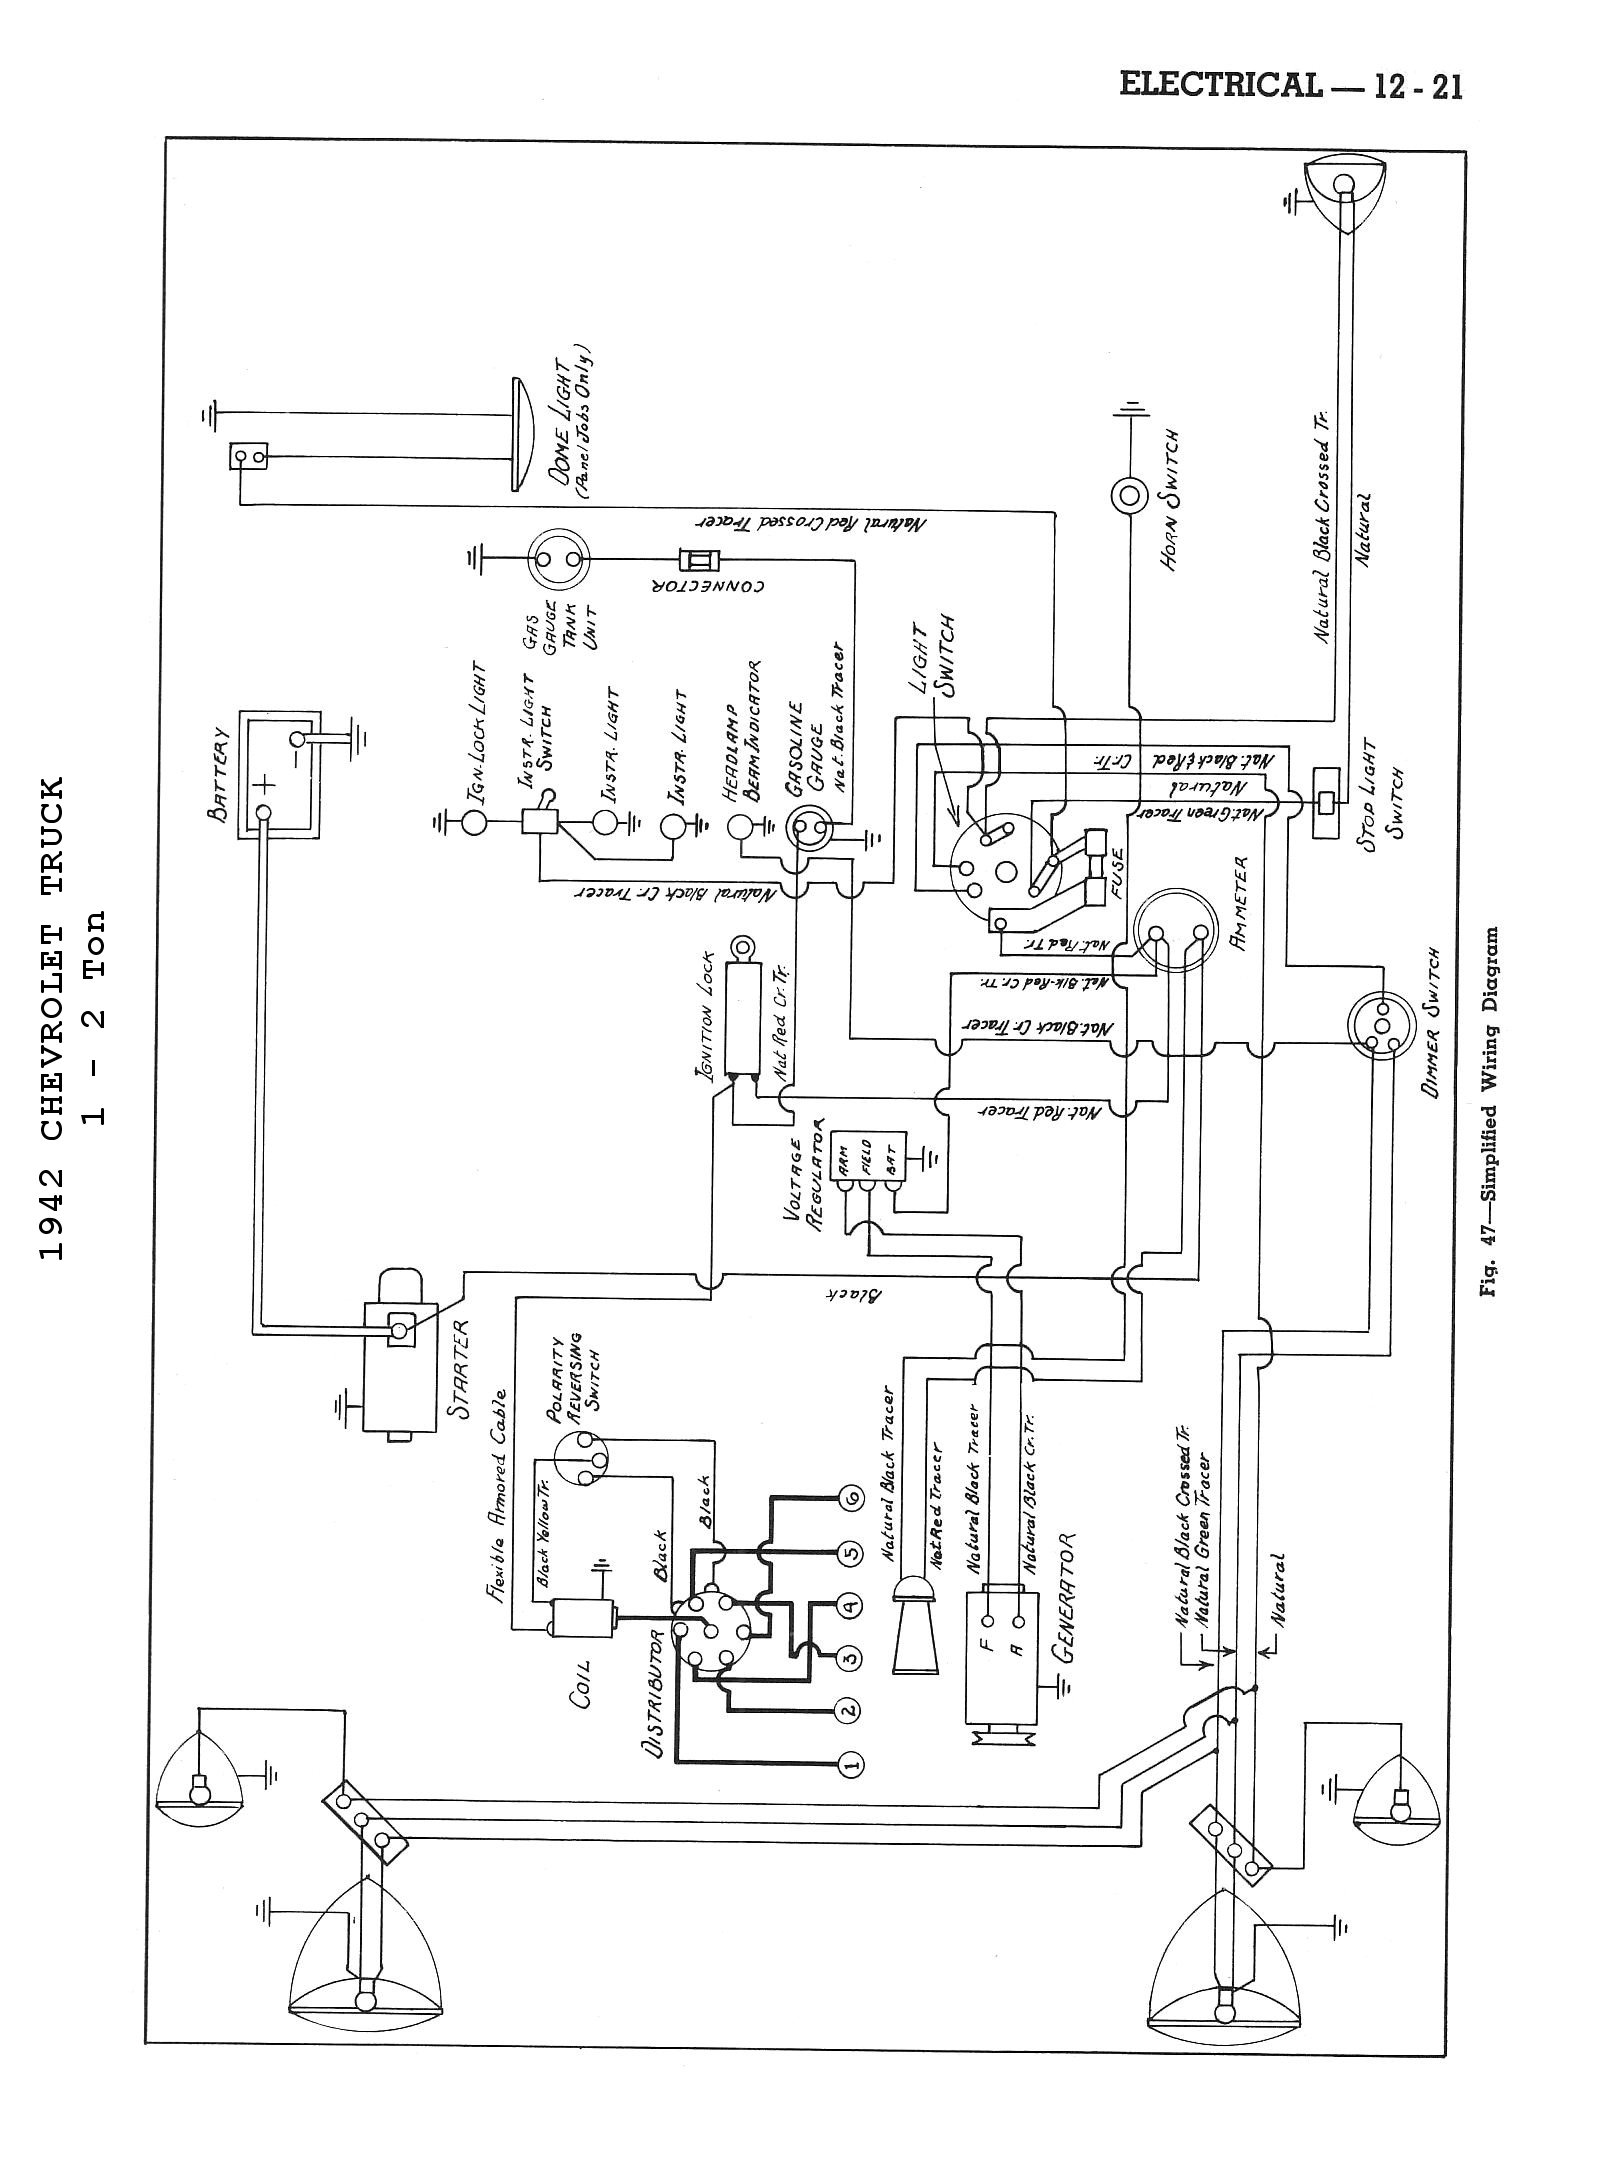 42cm4x2t1221 chevy wiring diagrams wiring diagram for cm truck bed at crackthecode.co